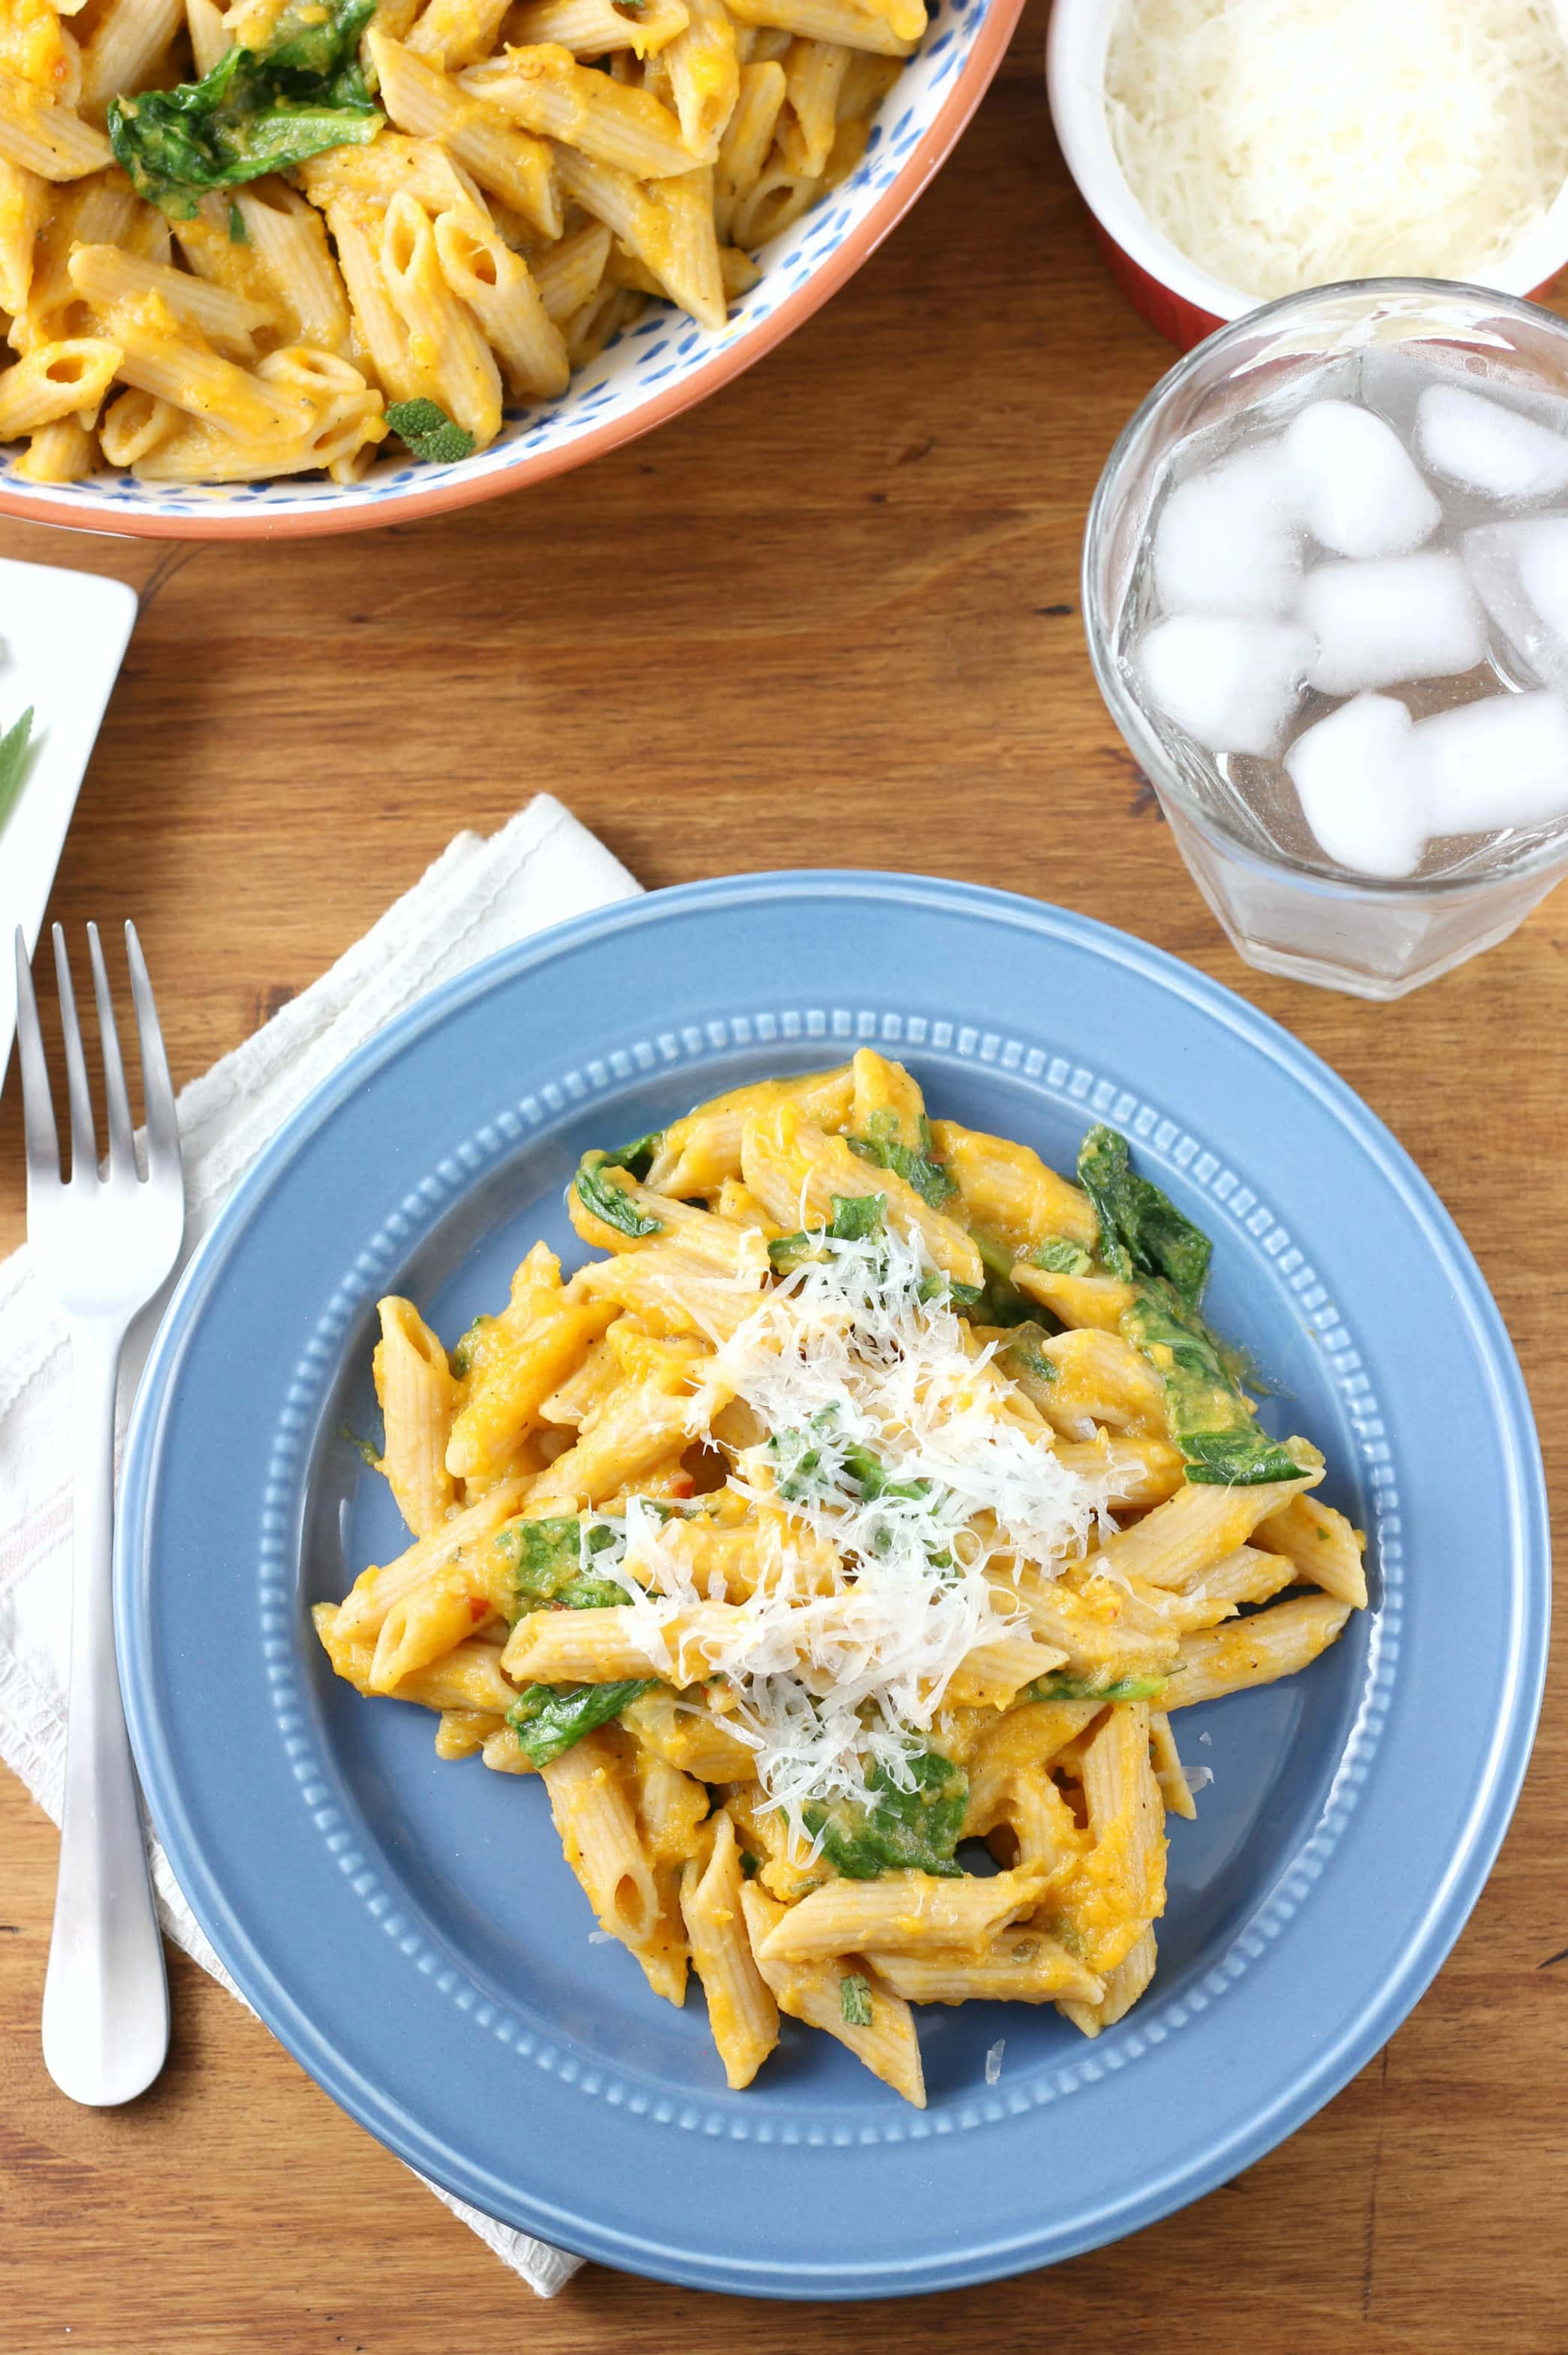 Creamy Butternut Penne Pasta with Spinach and Parmesan Recipe from A Kitchen Addiction